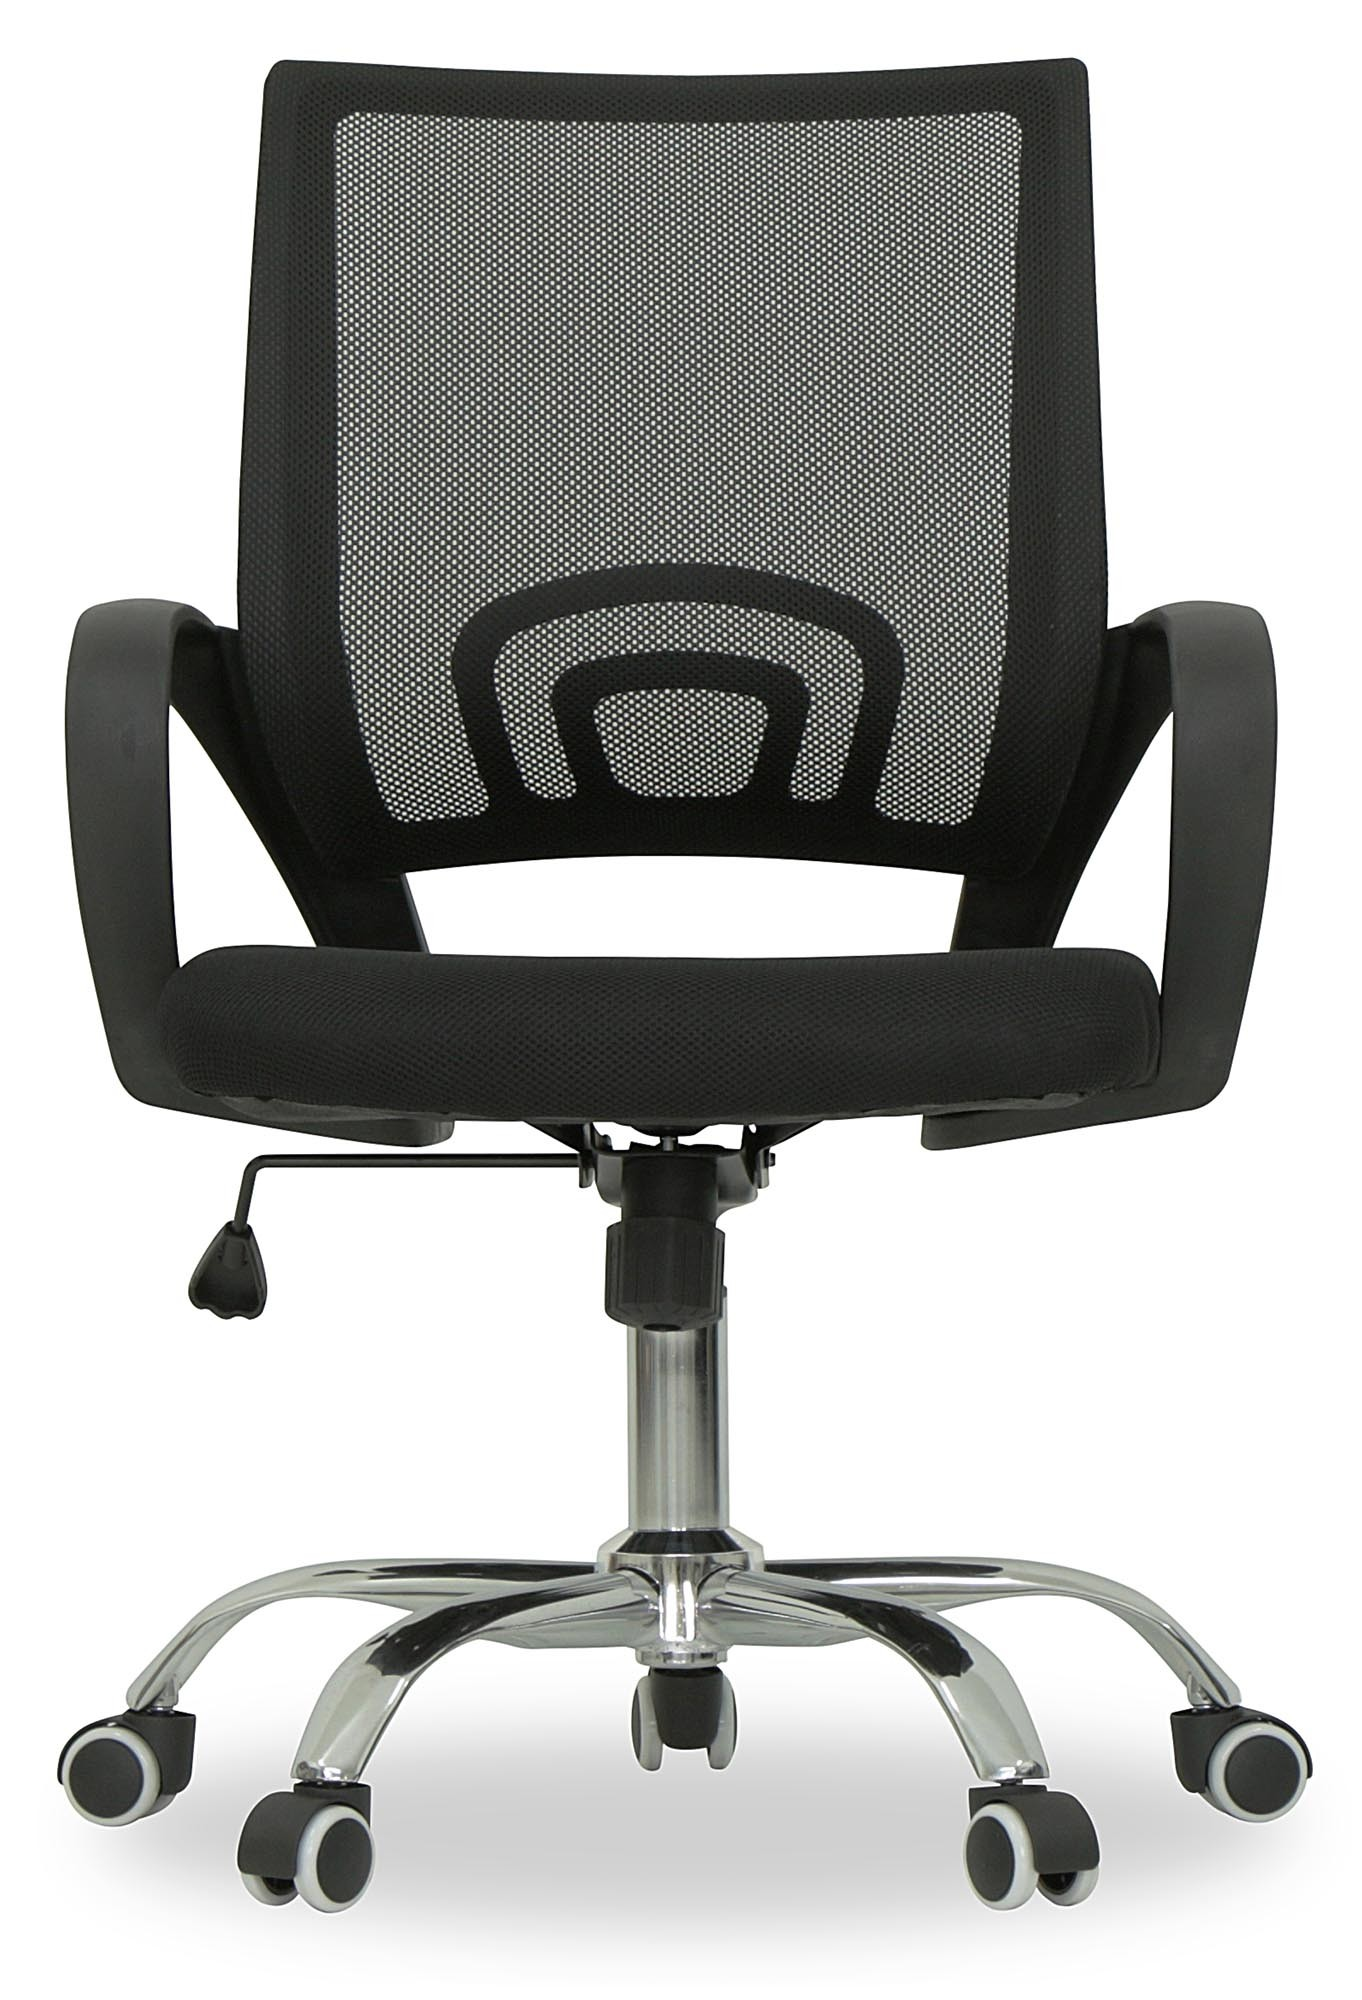 office chair customer reviews used church chairs for sale wayner black furniture home decor fortytwo 456